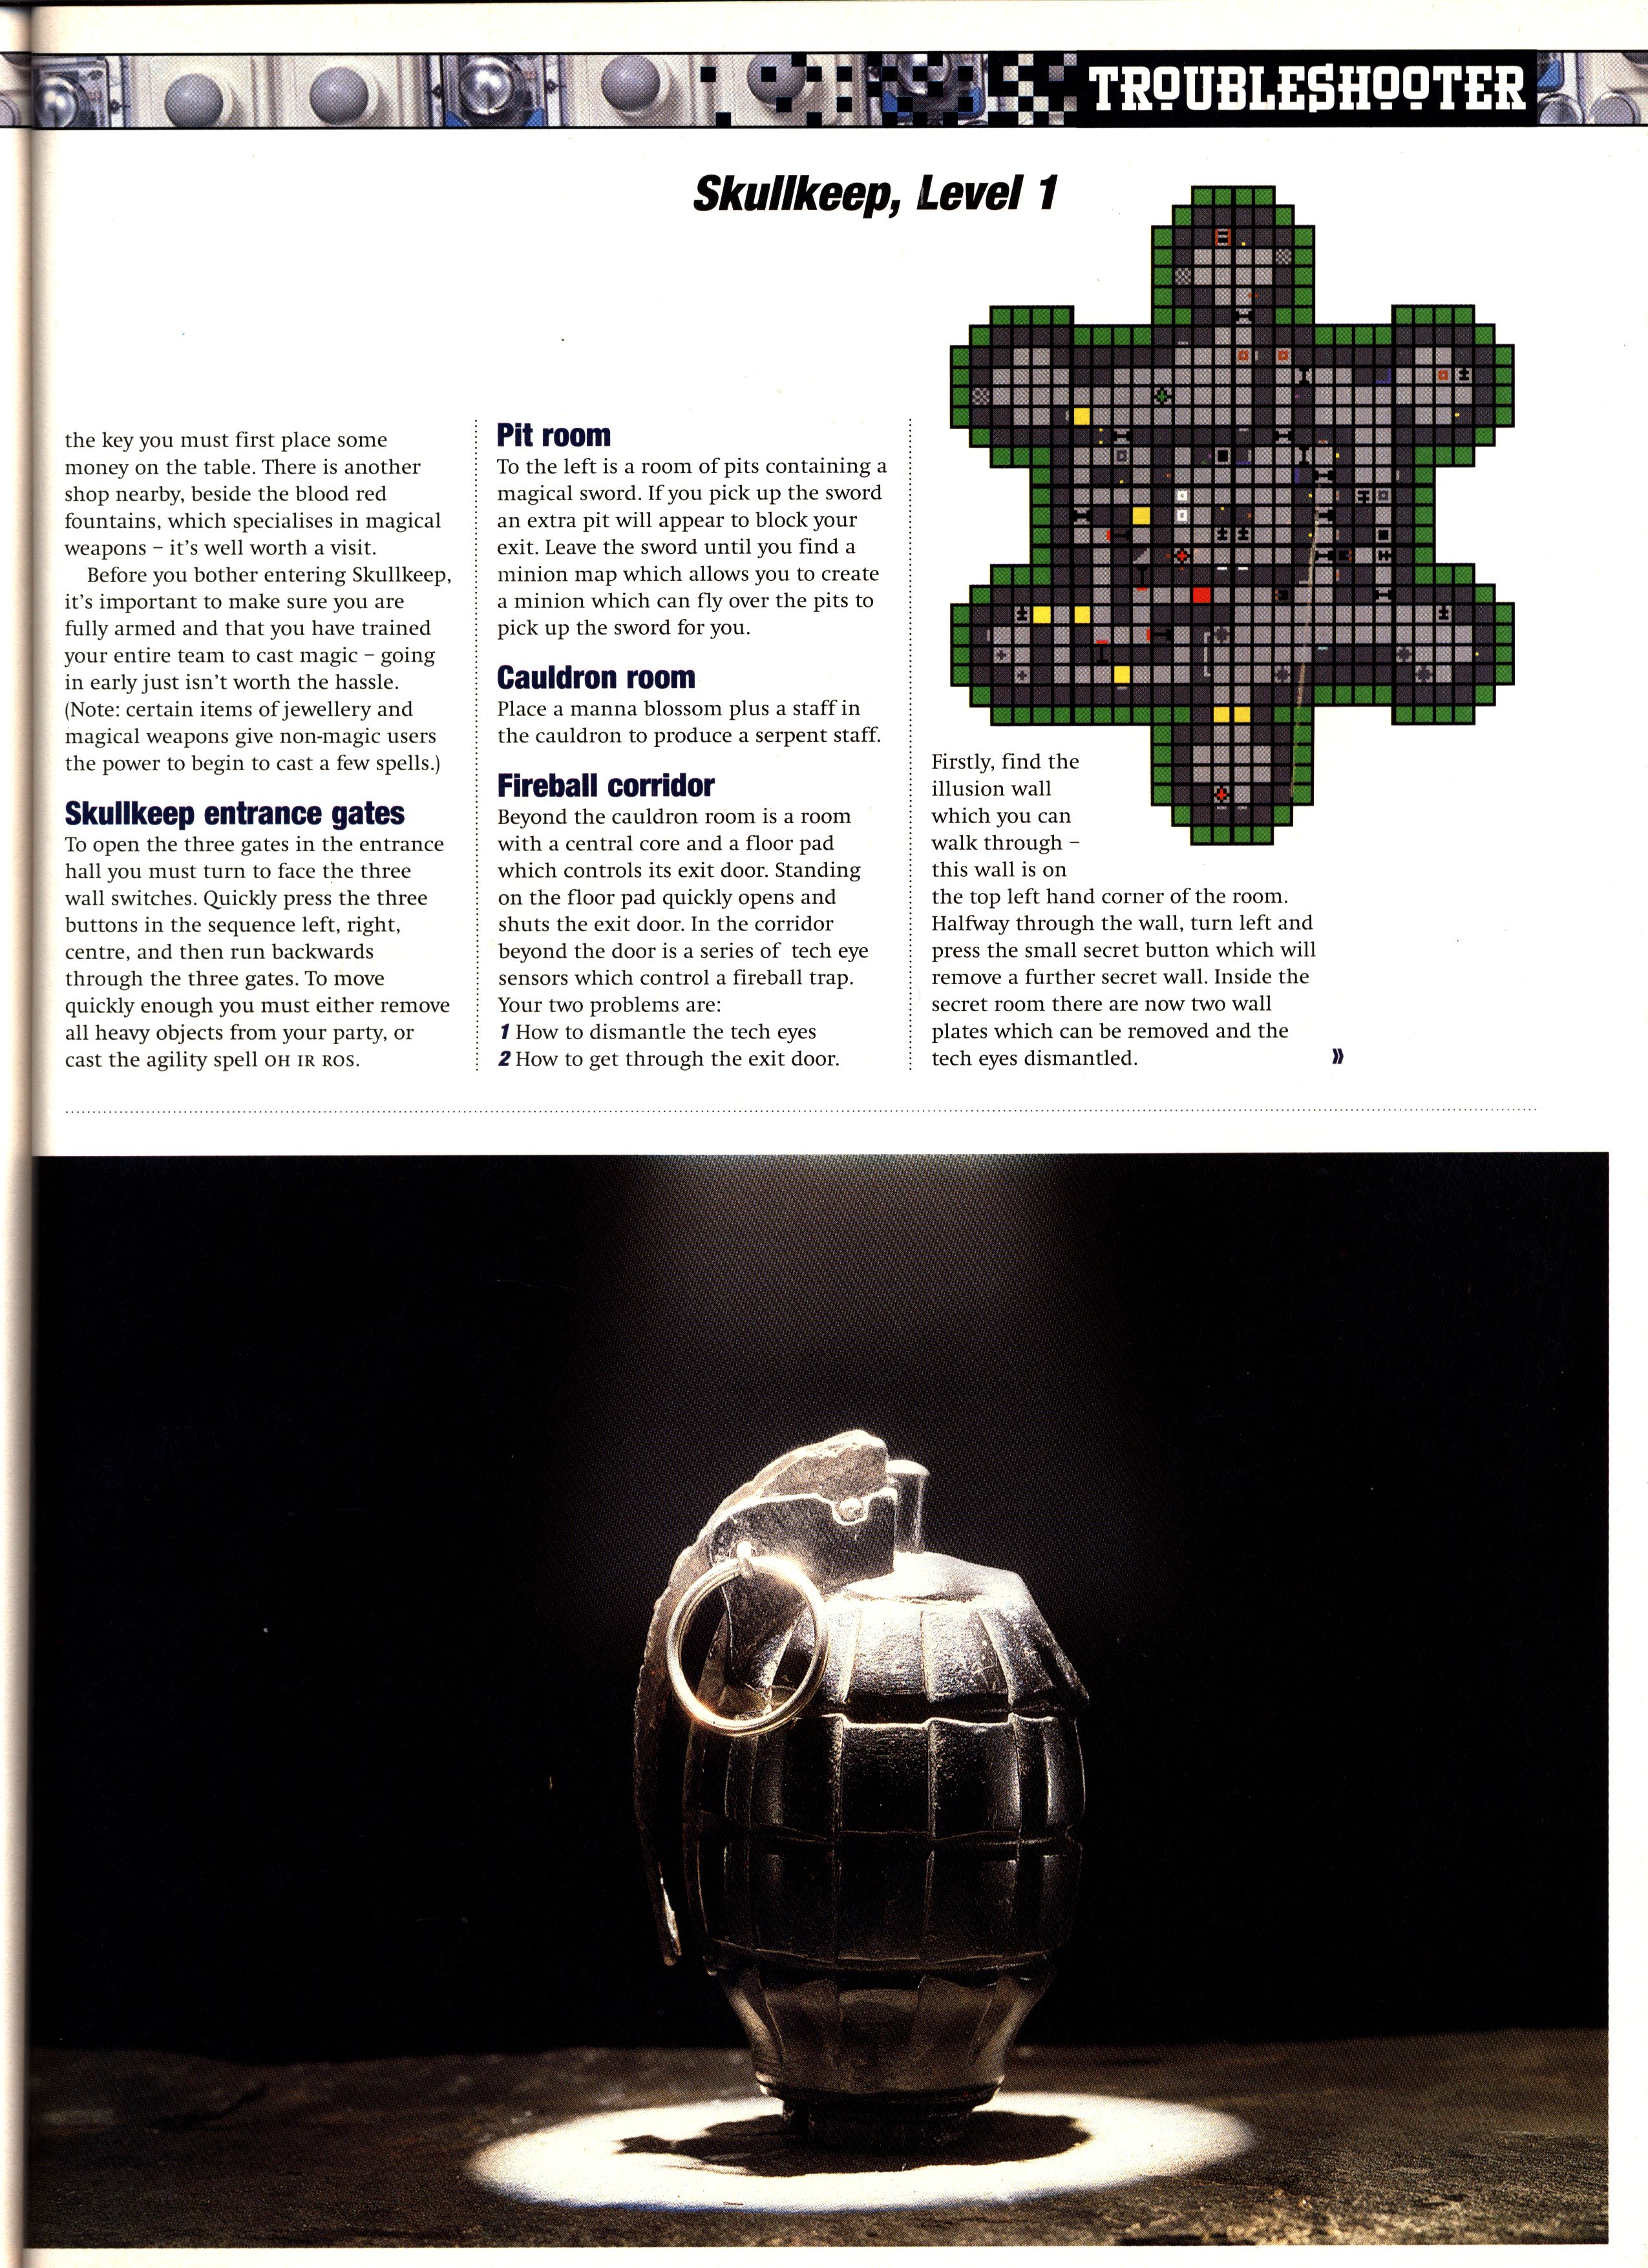 Dungeon Master II Guide published in British magazine 'PC Zone', Issue #33 December 1995, Page 149